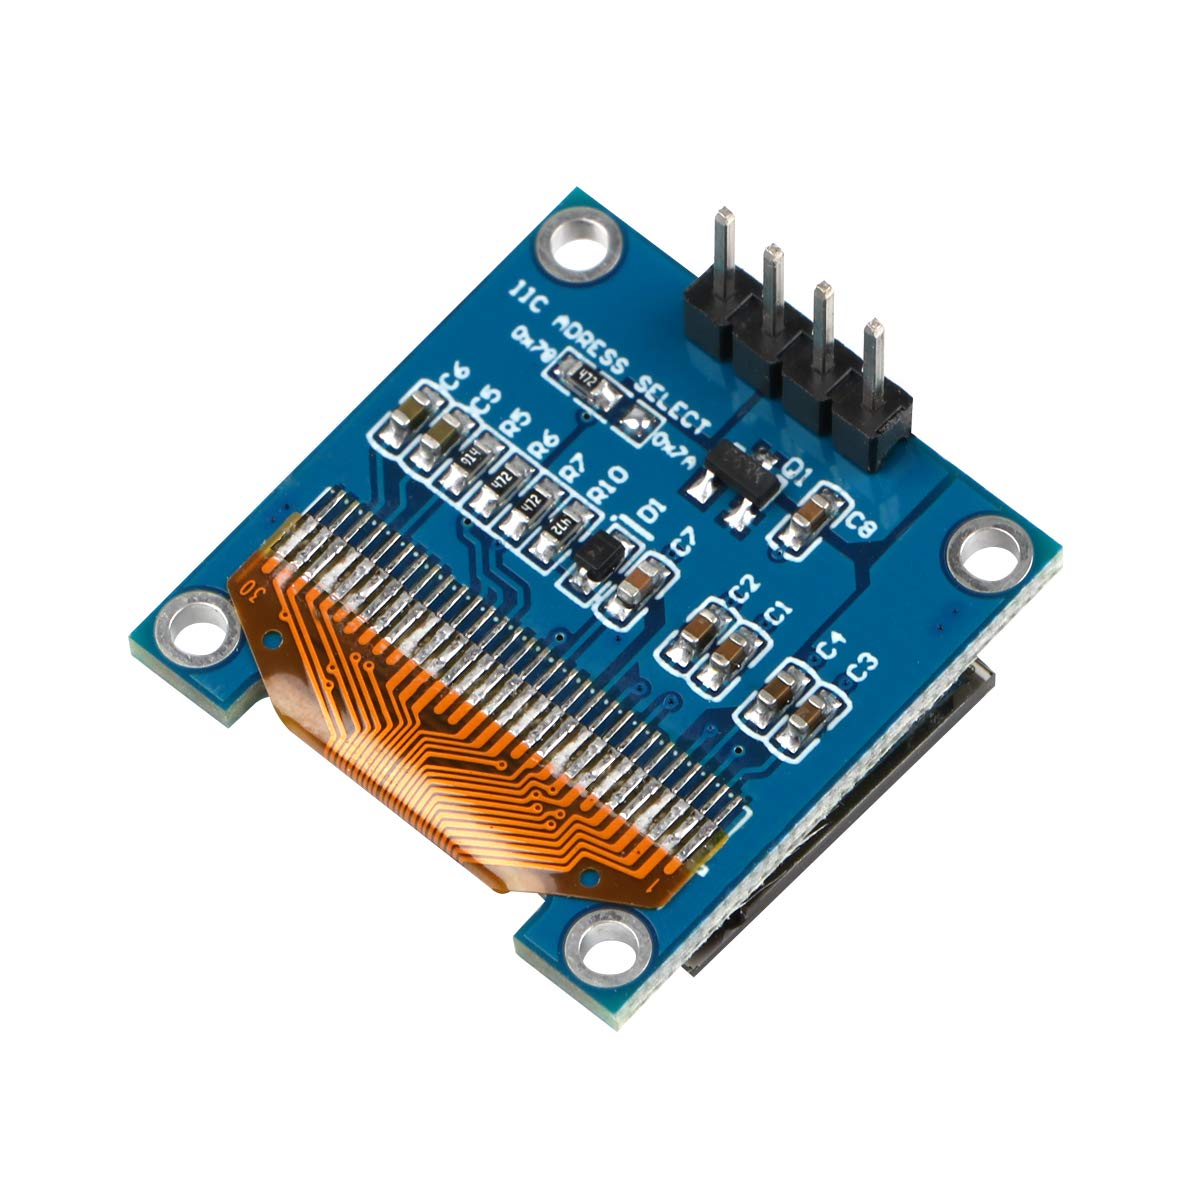 4pcs I2C OLED 0.96 Inch OLED Display Module IIC SSD1306 128 64 LCD White with Du-pont Wire 40-Pin Female to Female for Arduino UNO R3 STM